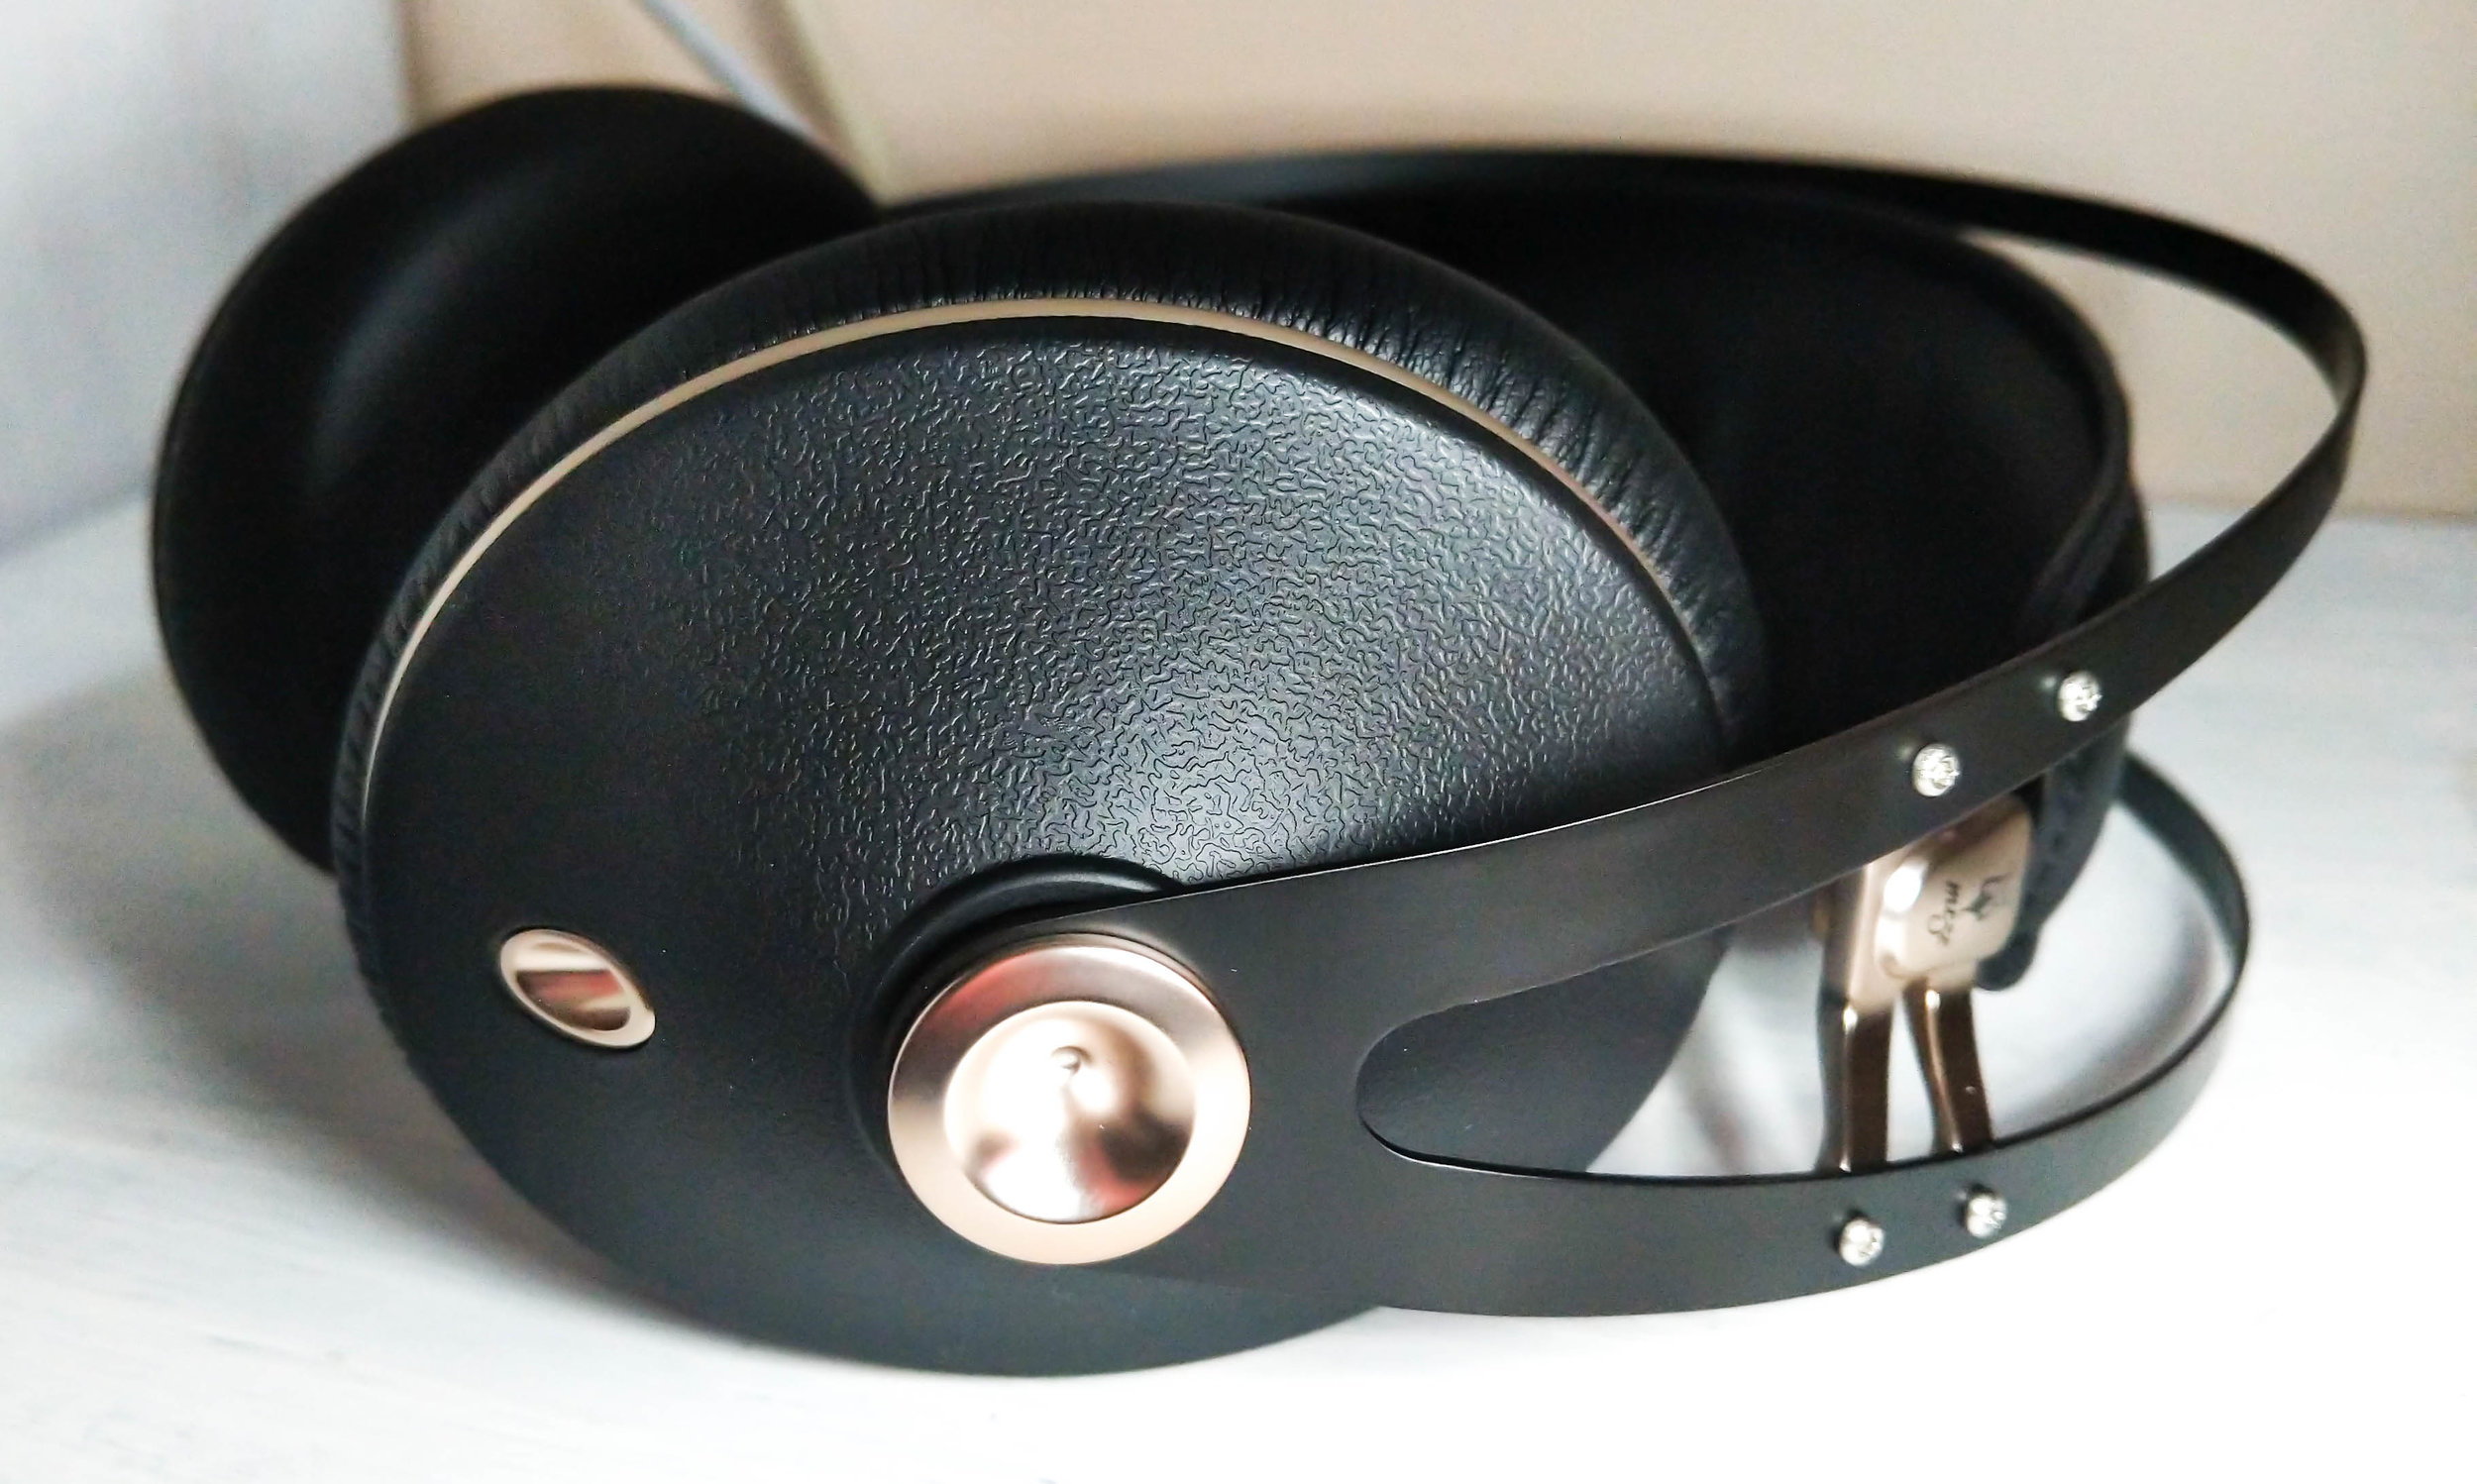 Meze 99 Neo headphones with black and rose gold colour.